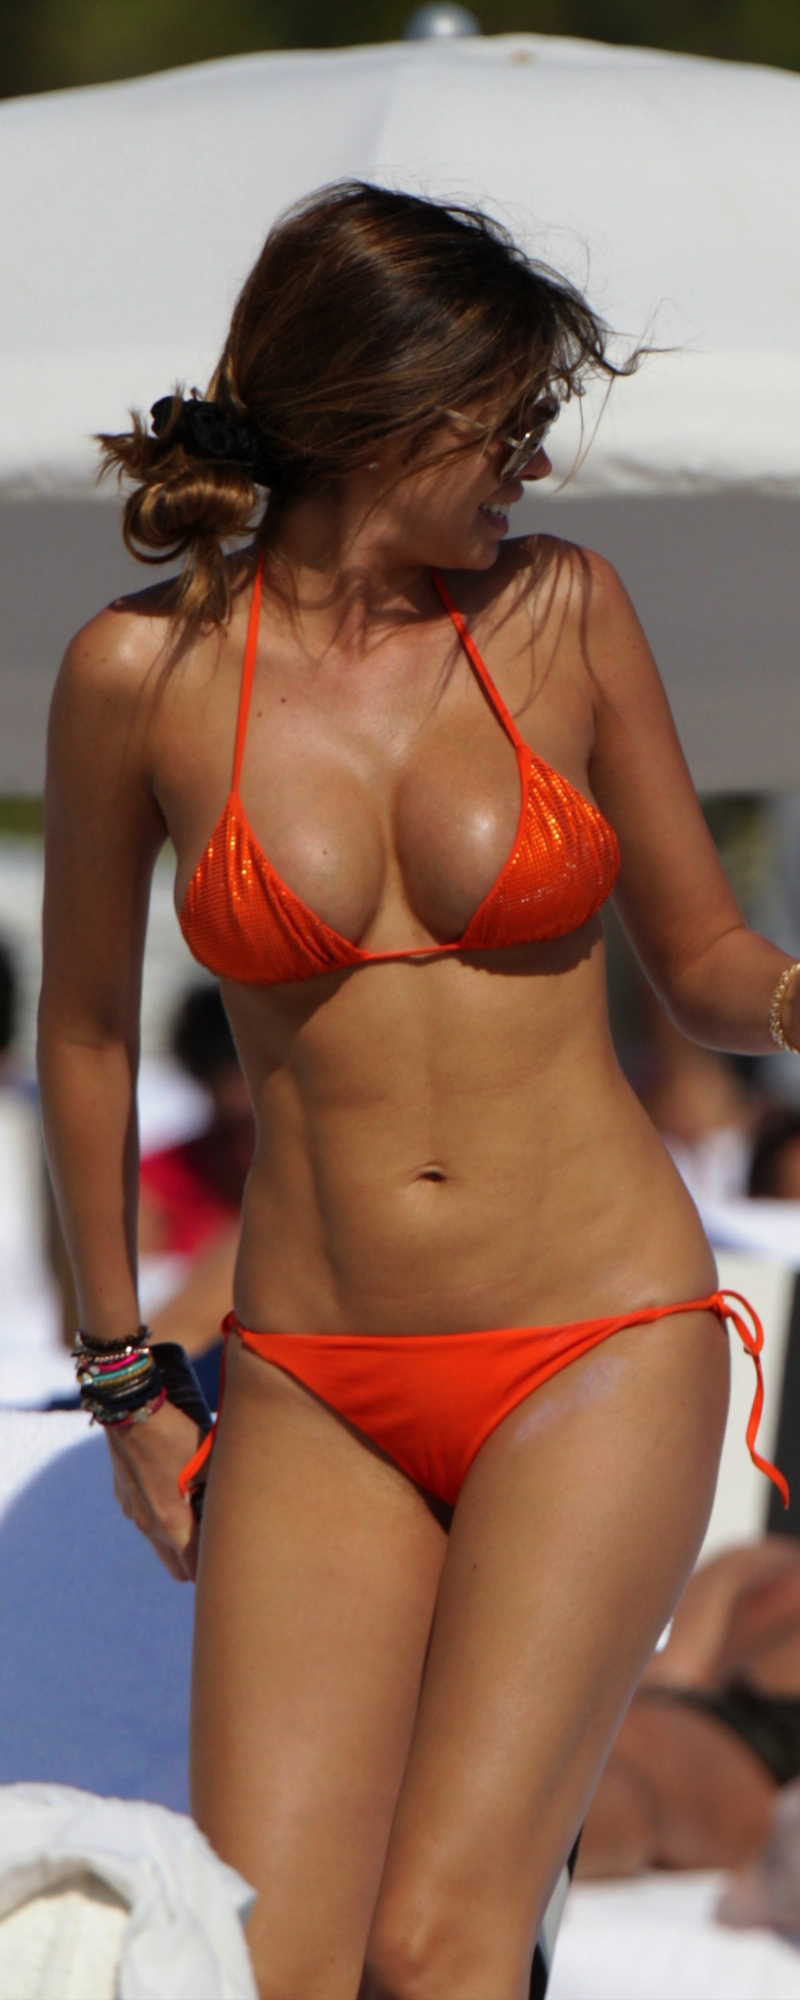 Aida Yespica at the beach in Miami wearing an orange bikini